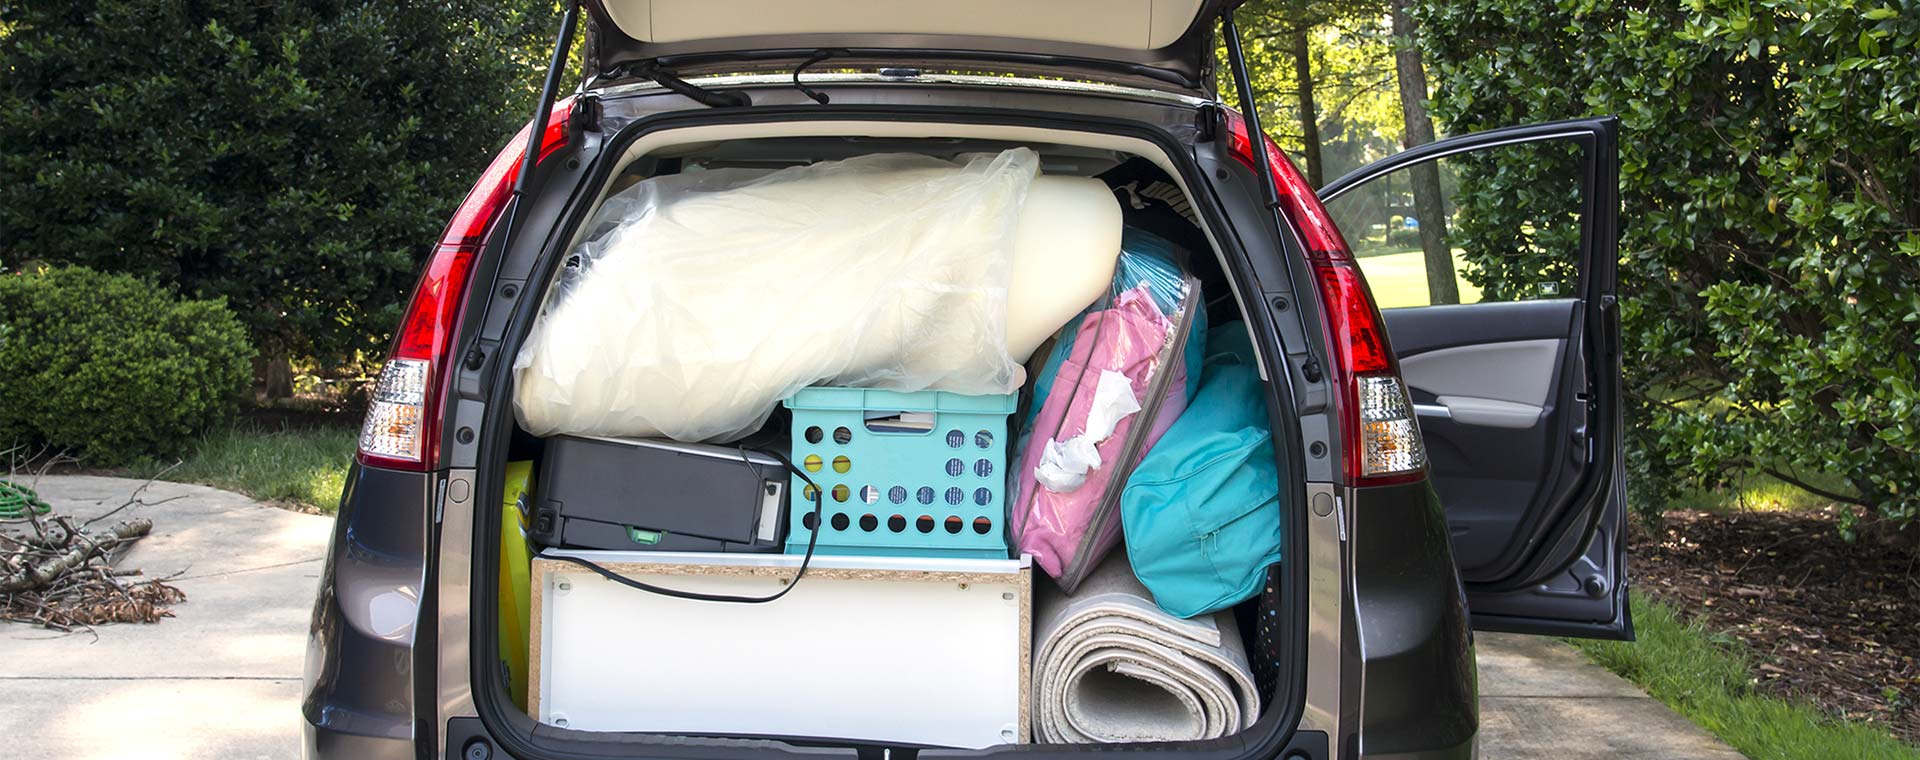 A view of the trunk of an SUV that is fully packed with boxes, blankets, suitcases